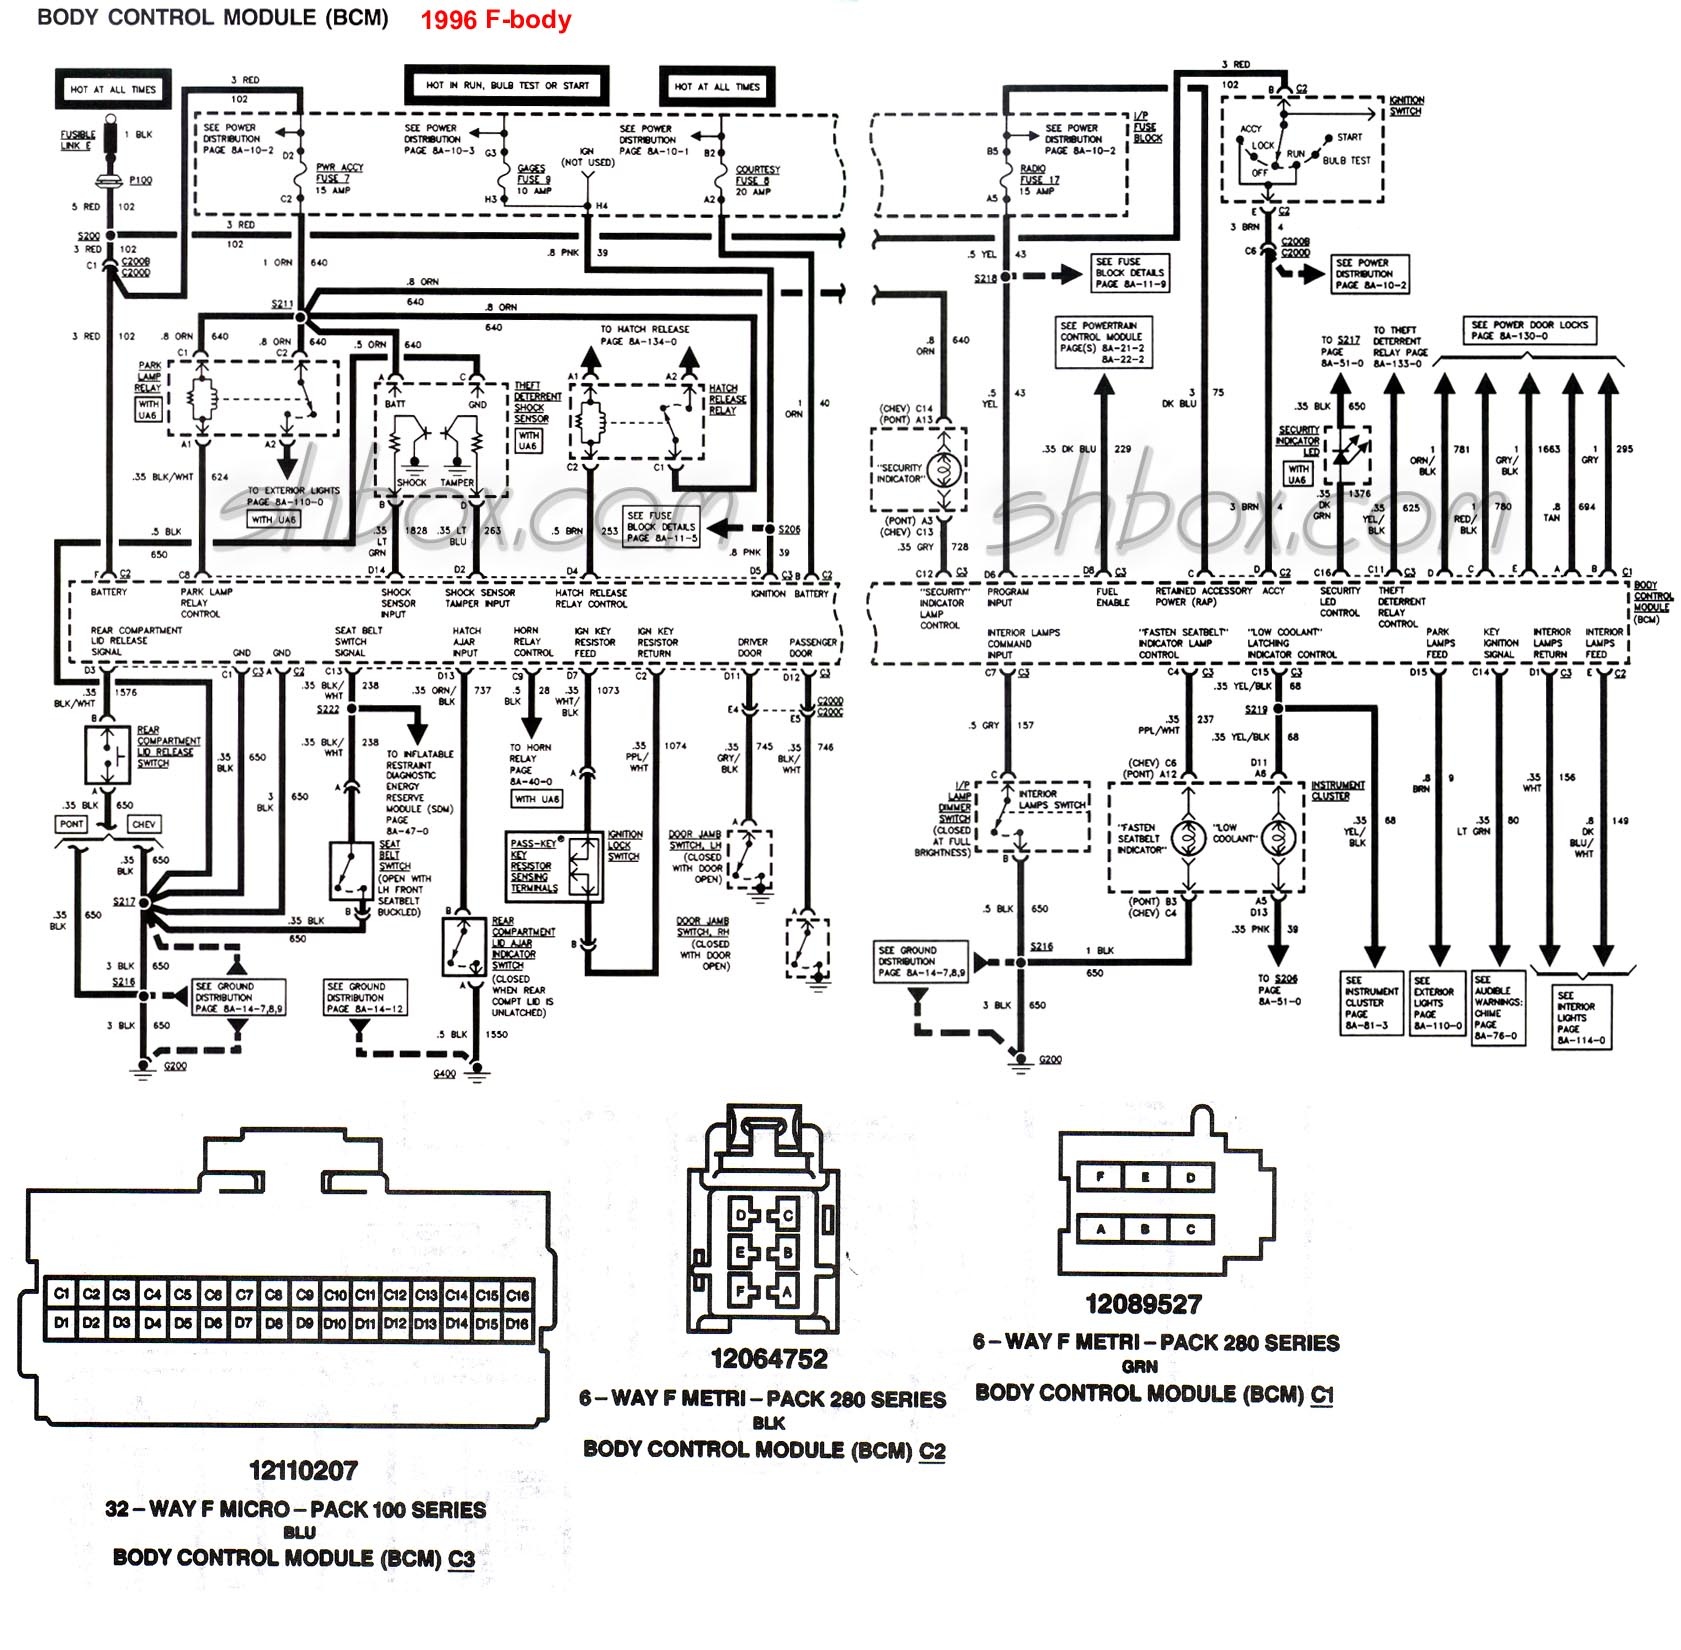 hight resolution of 2000 impala bcm wiring schematic wiring diagram info 2000 impala bcm wiring schematic